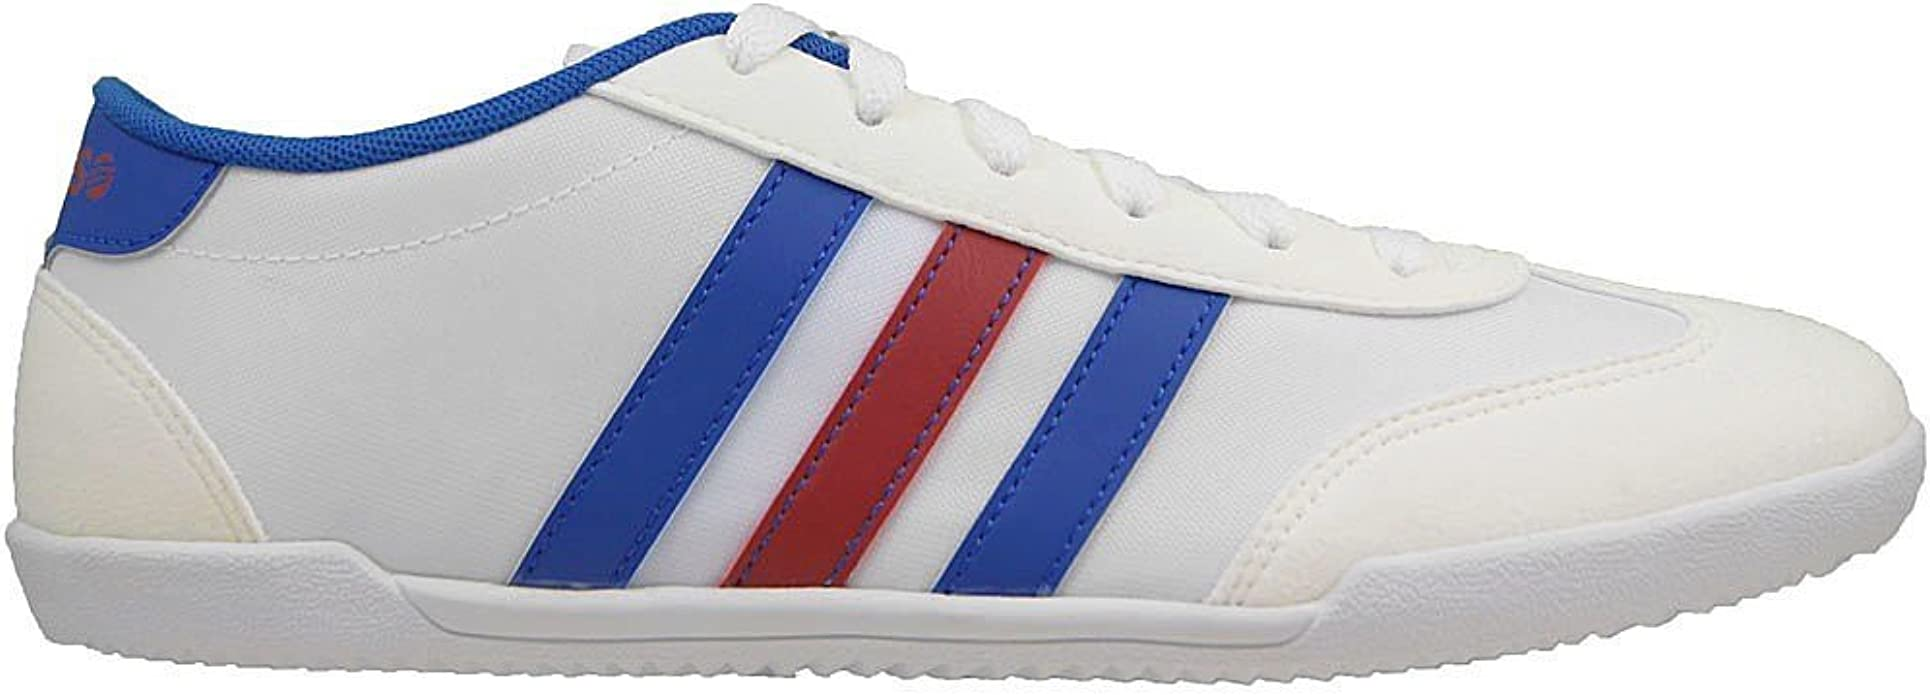 Color: Blue-Red-White - Size: 10.5